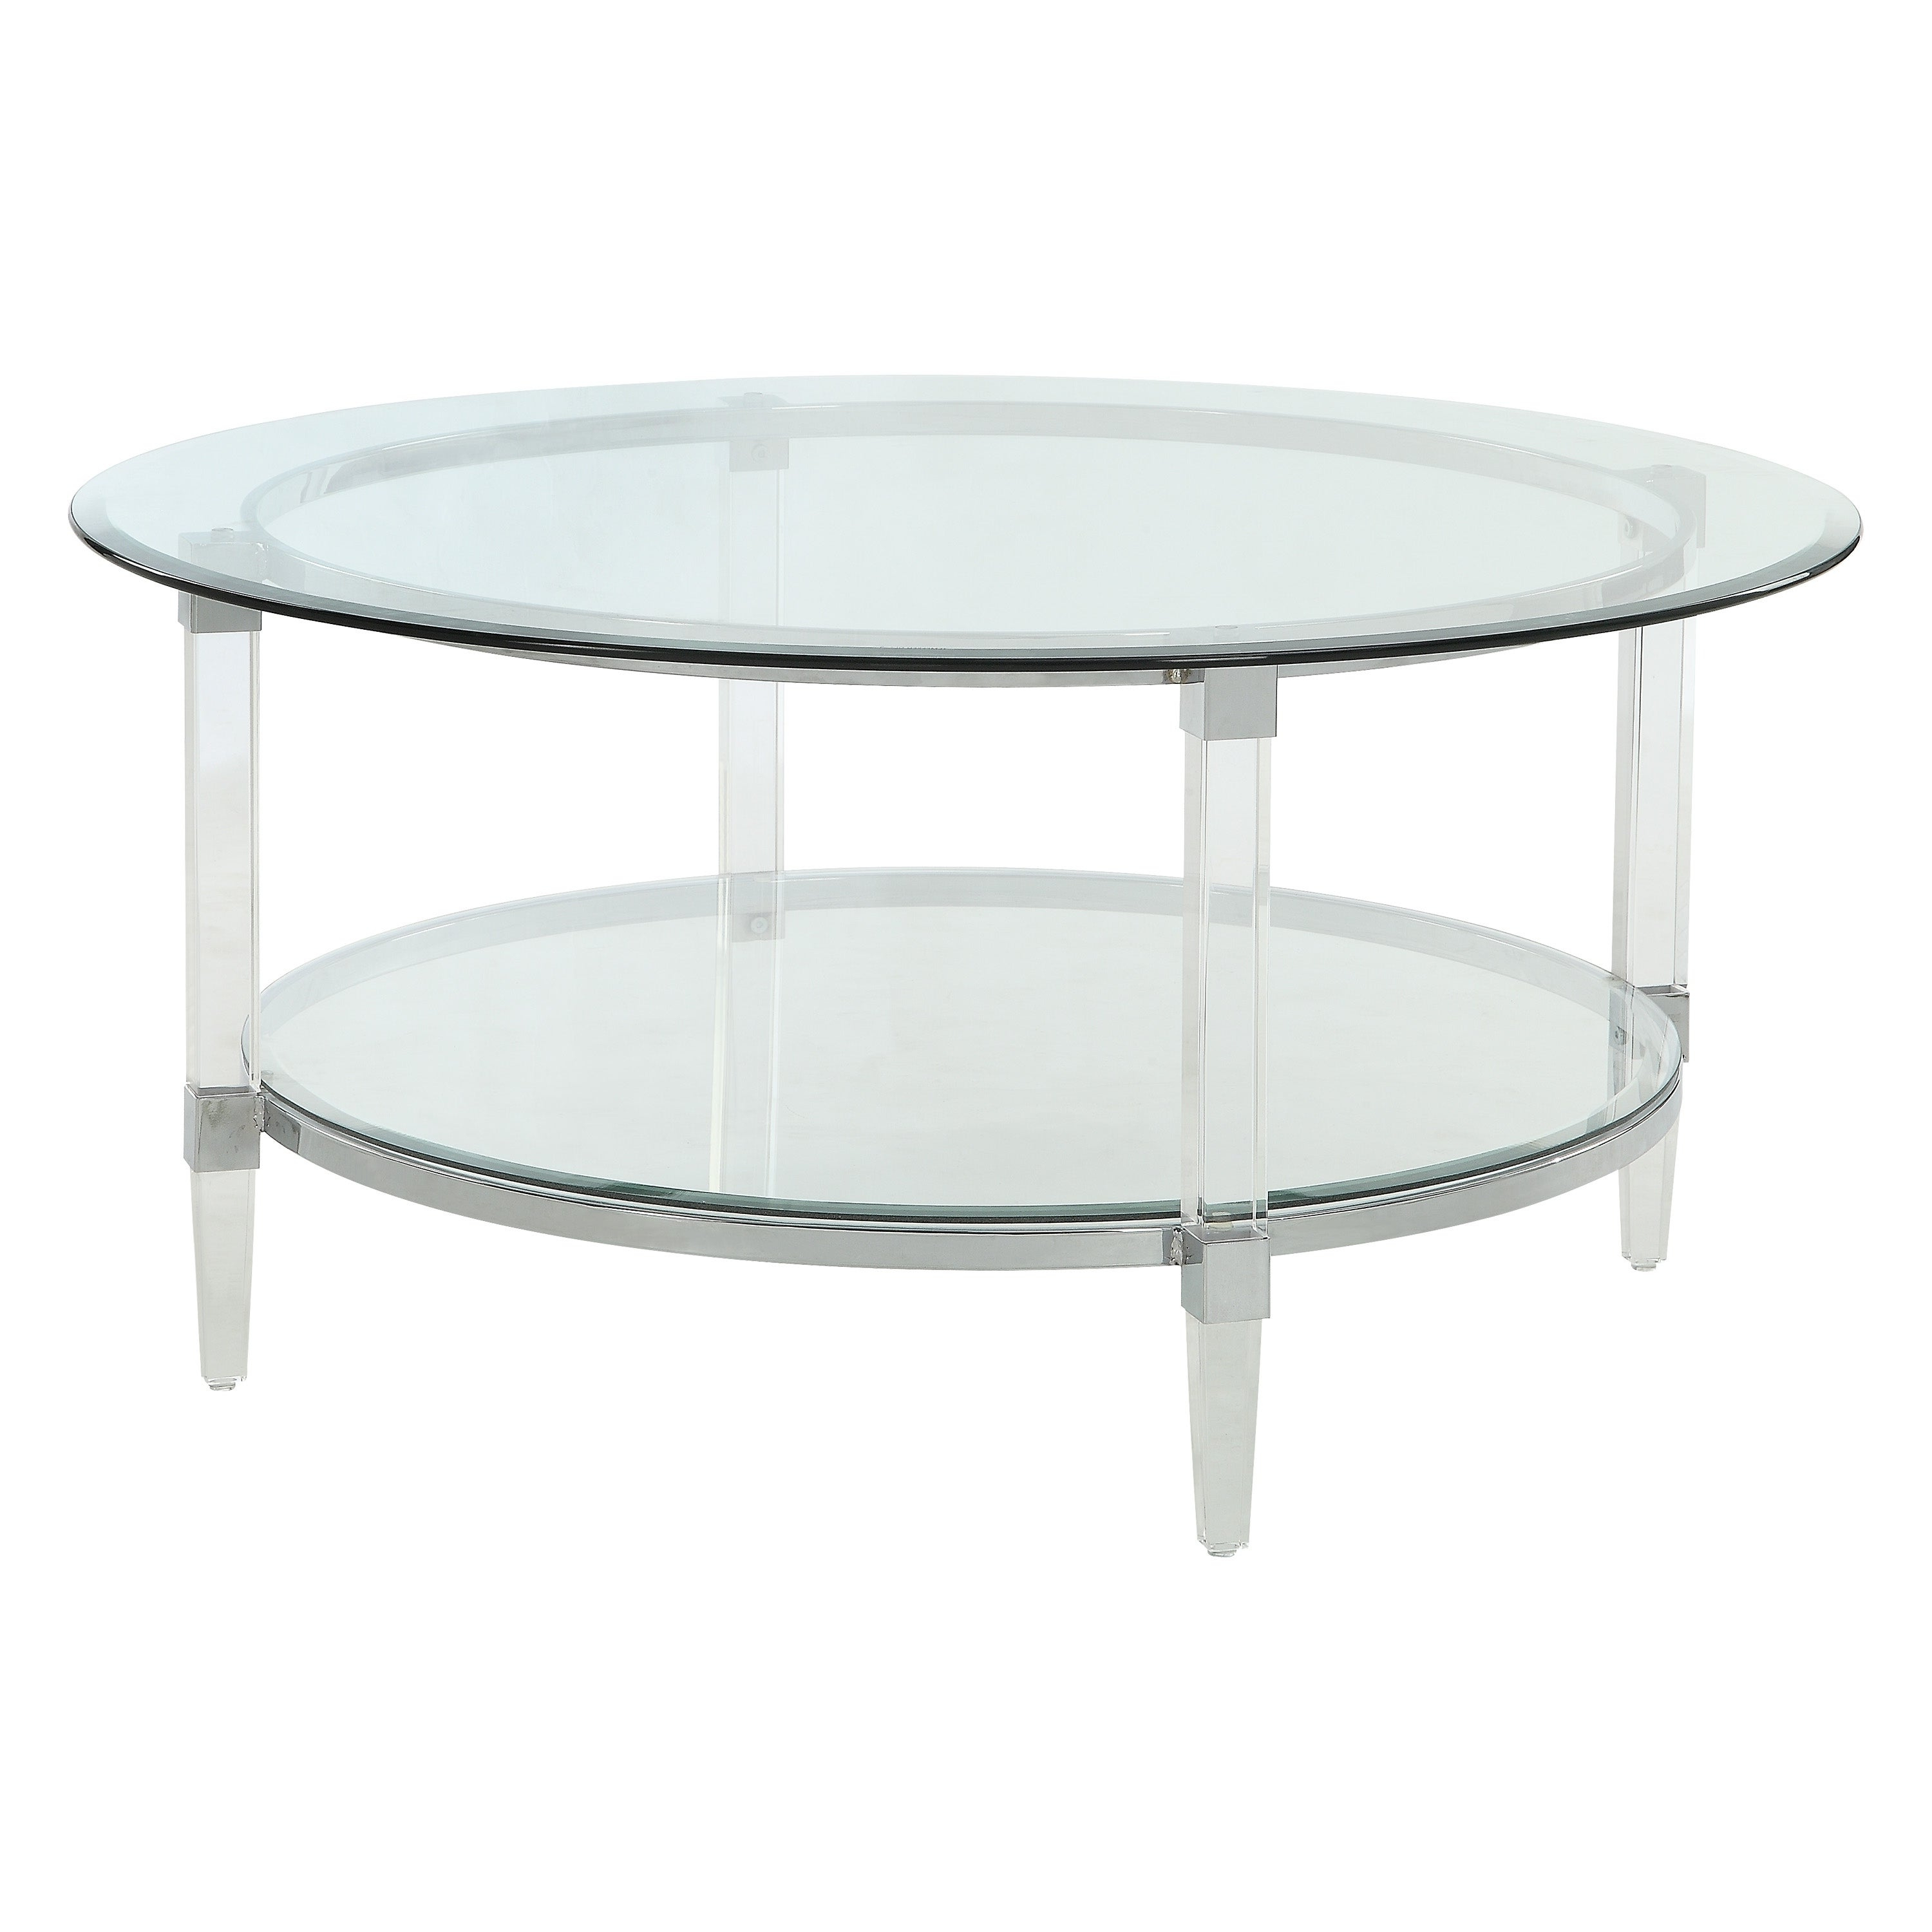 Acme Polyanthus Coffee Table, Clear Acrylic, Chrome & Clear Glass Pertaining To Well Liked Elowen Round Glass Coffee Tables (View 3 of 20)